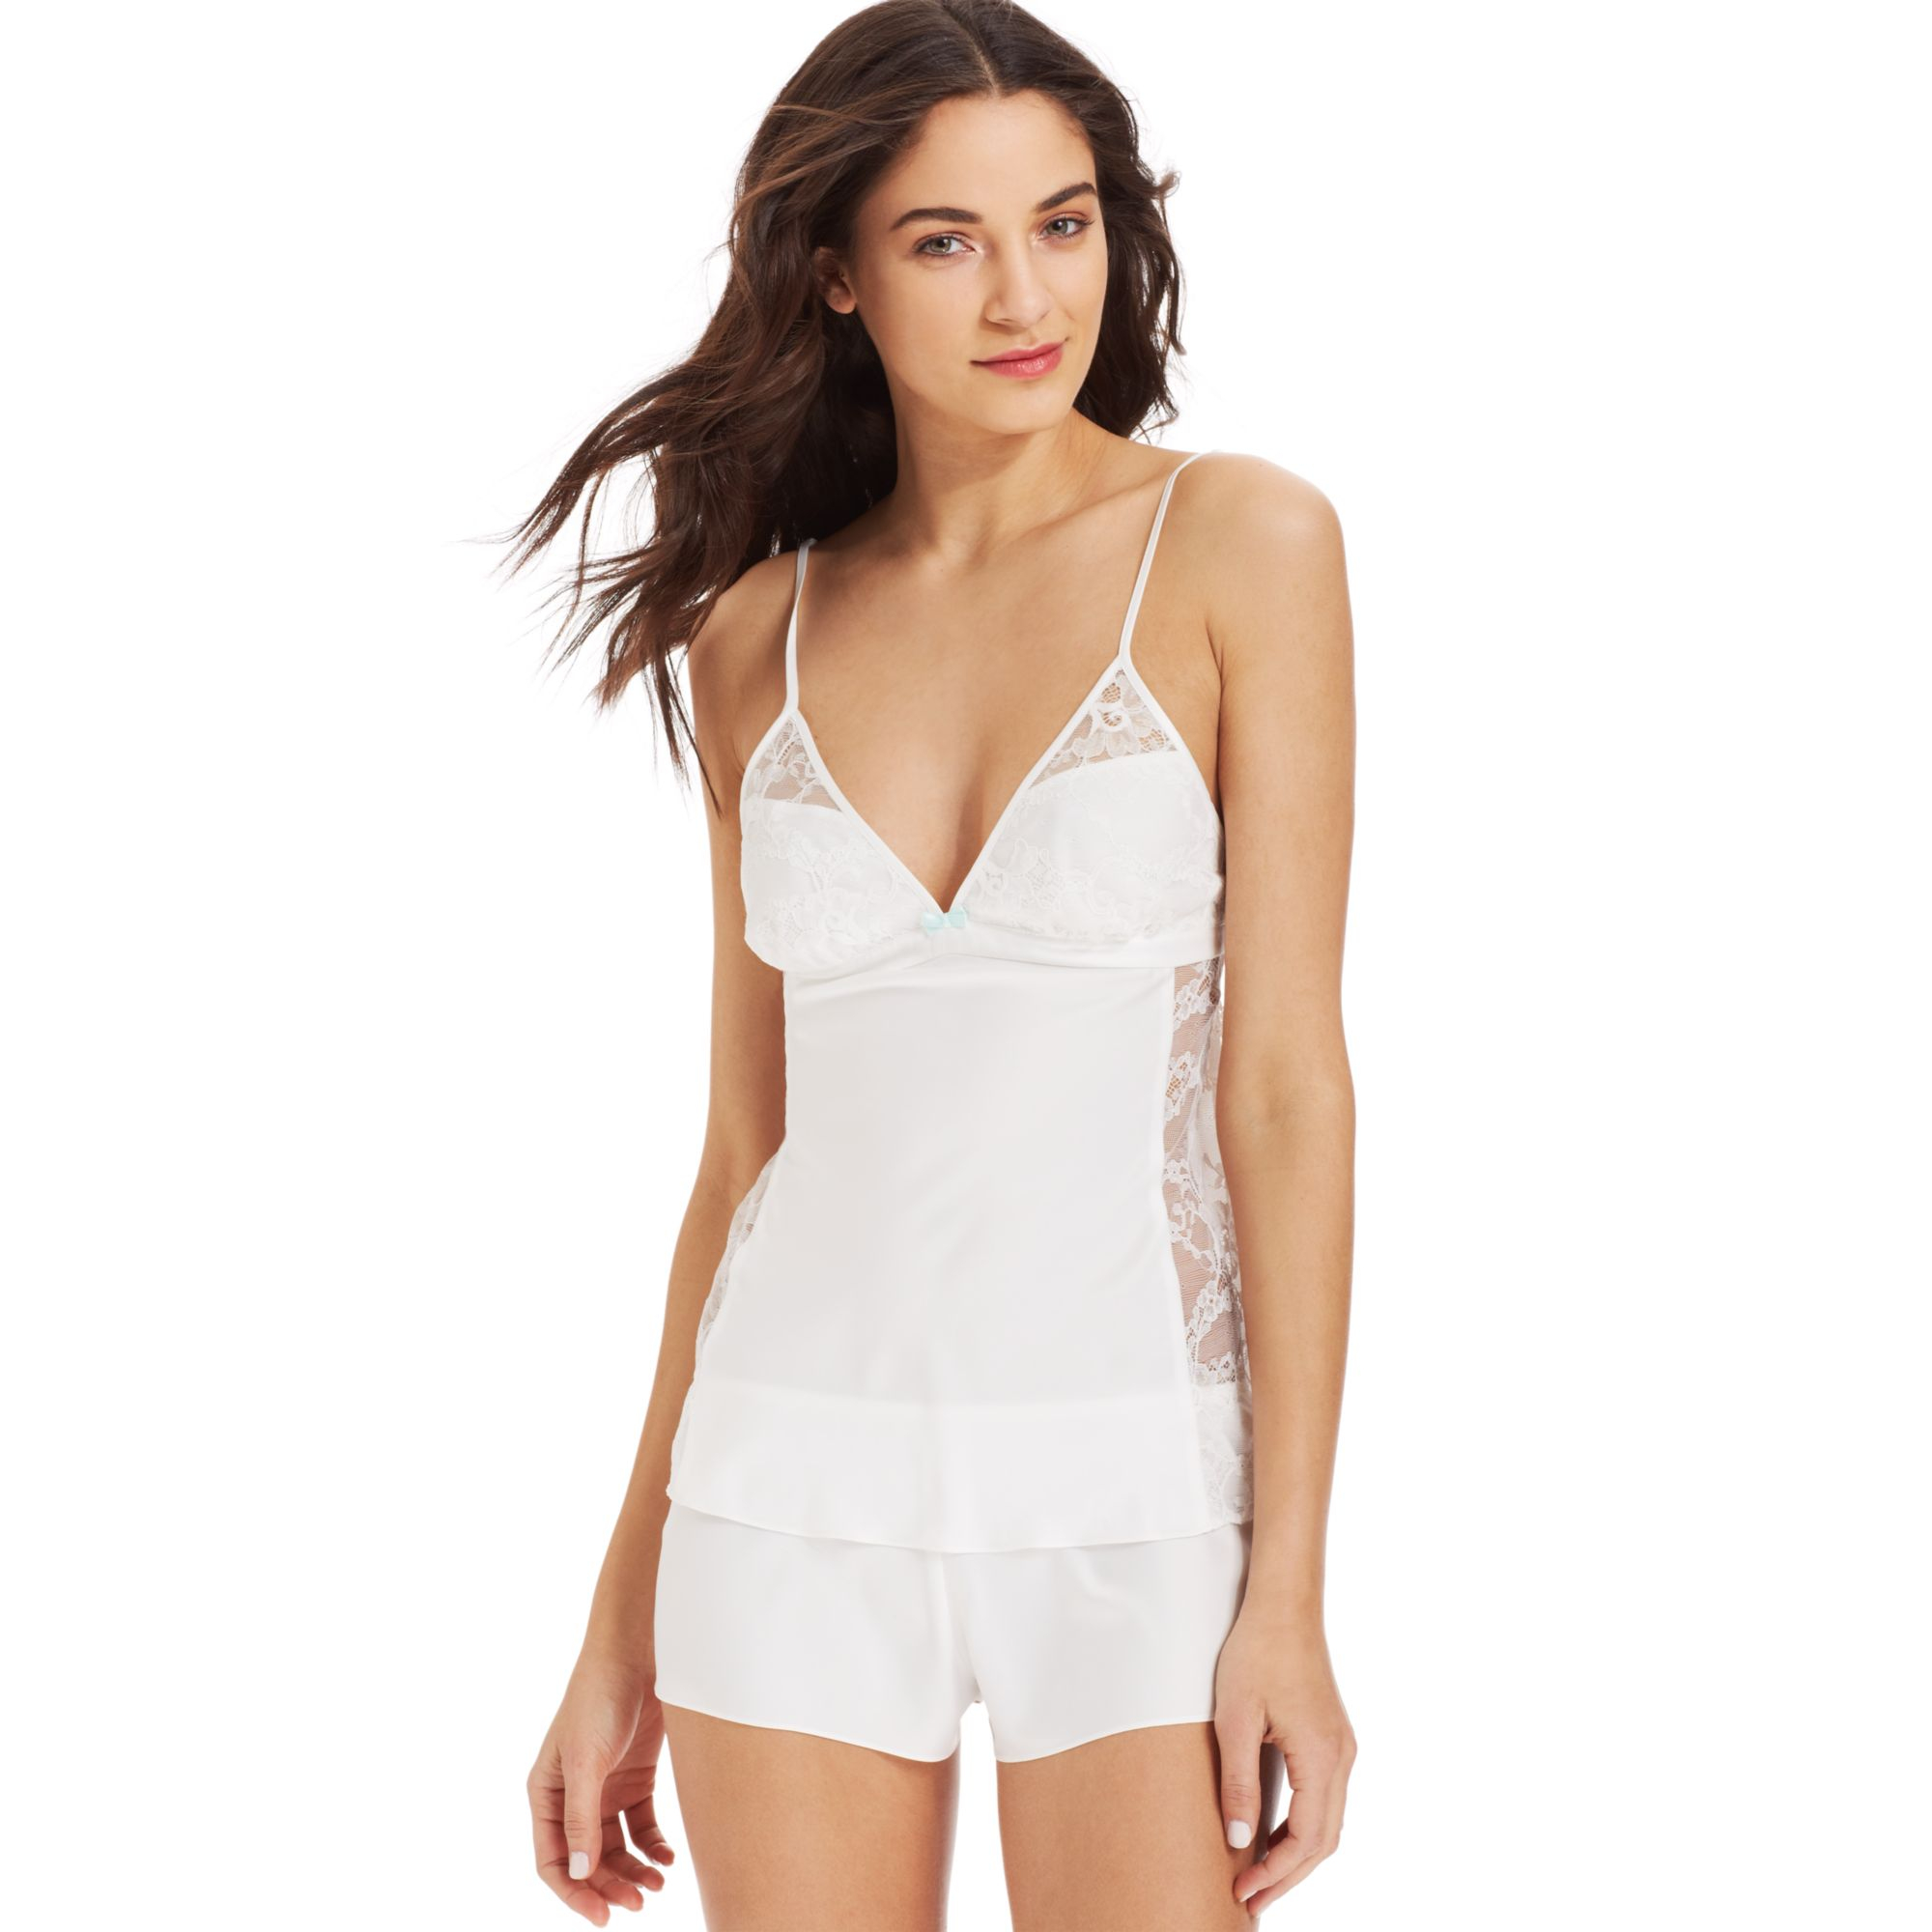 Betsey johnson sultry satin fly camisole and tap shorts for Robes de mariage de betsey johnson